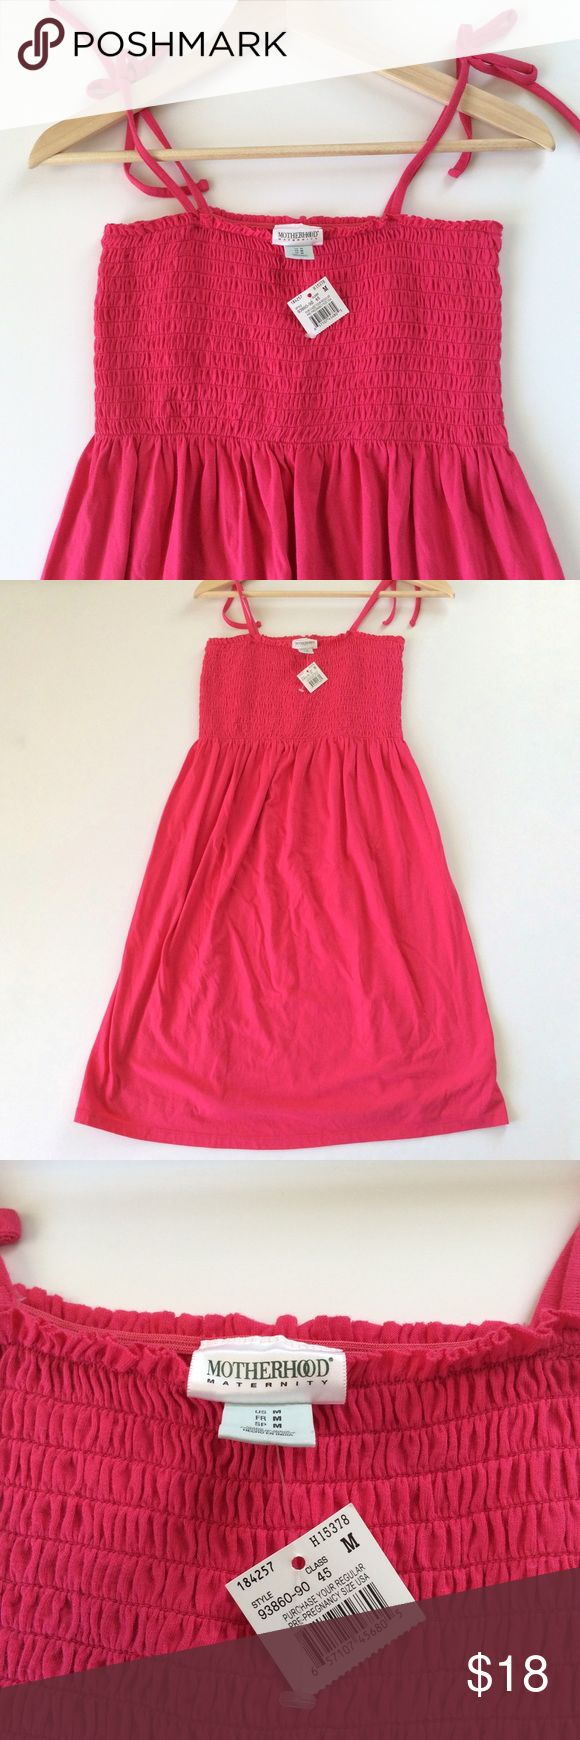 [Motherhood Maternity] Pink Maternity Sundress New with tags casual pull-on summer sun dress from Motherhood Maternity. Color is pink. Tie shoulder straps. Smocked bust. Comfy for those hot summer days during pregnancy. Size M (medium). Could also be used as a beach cover-up even if you aren't pregnant! Motherhood Maternity Dresses